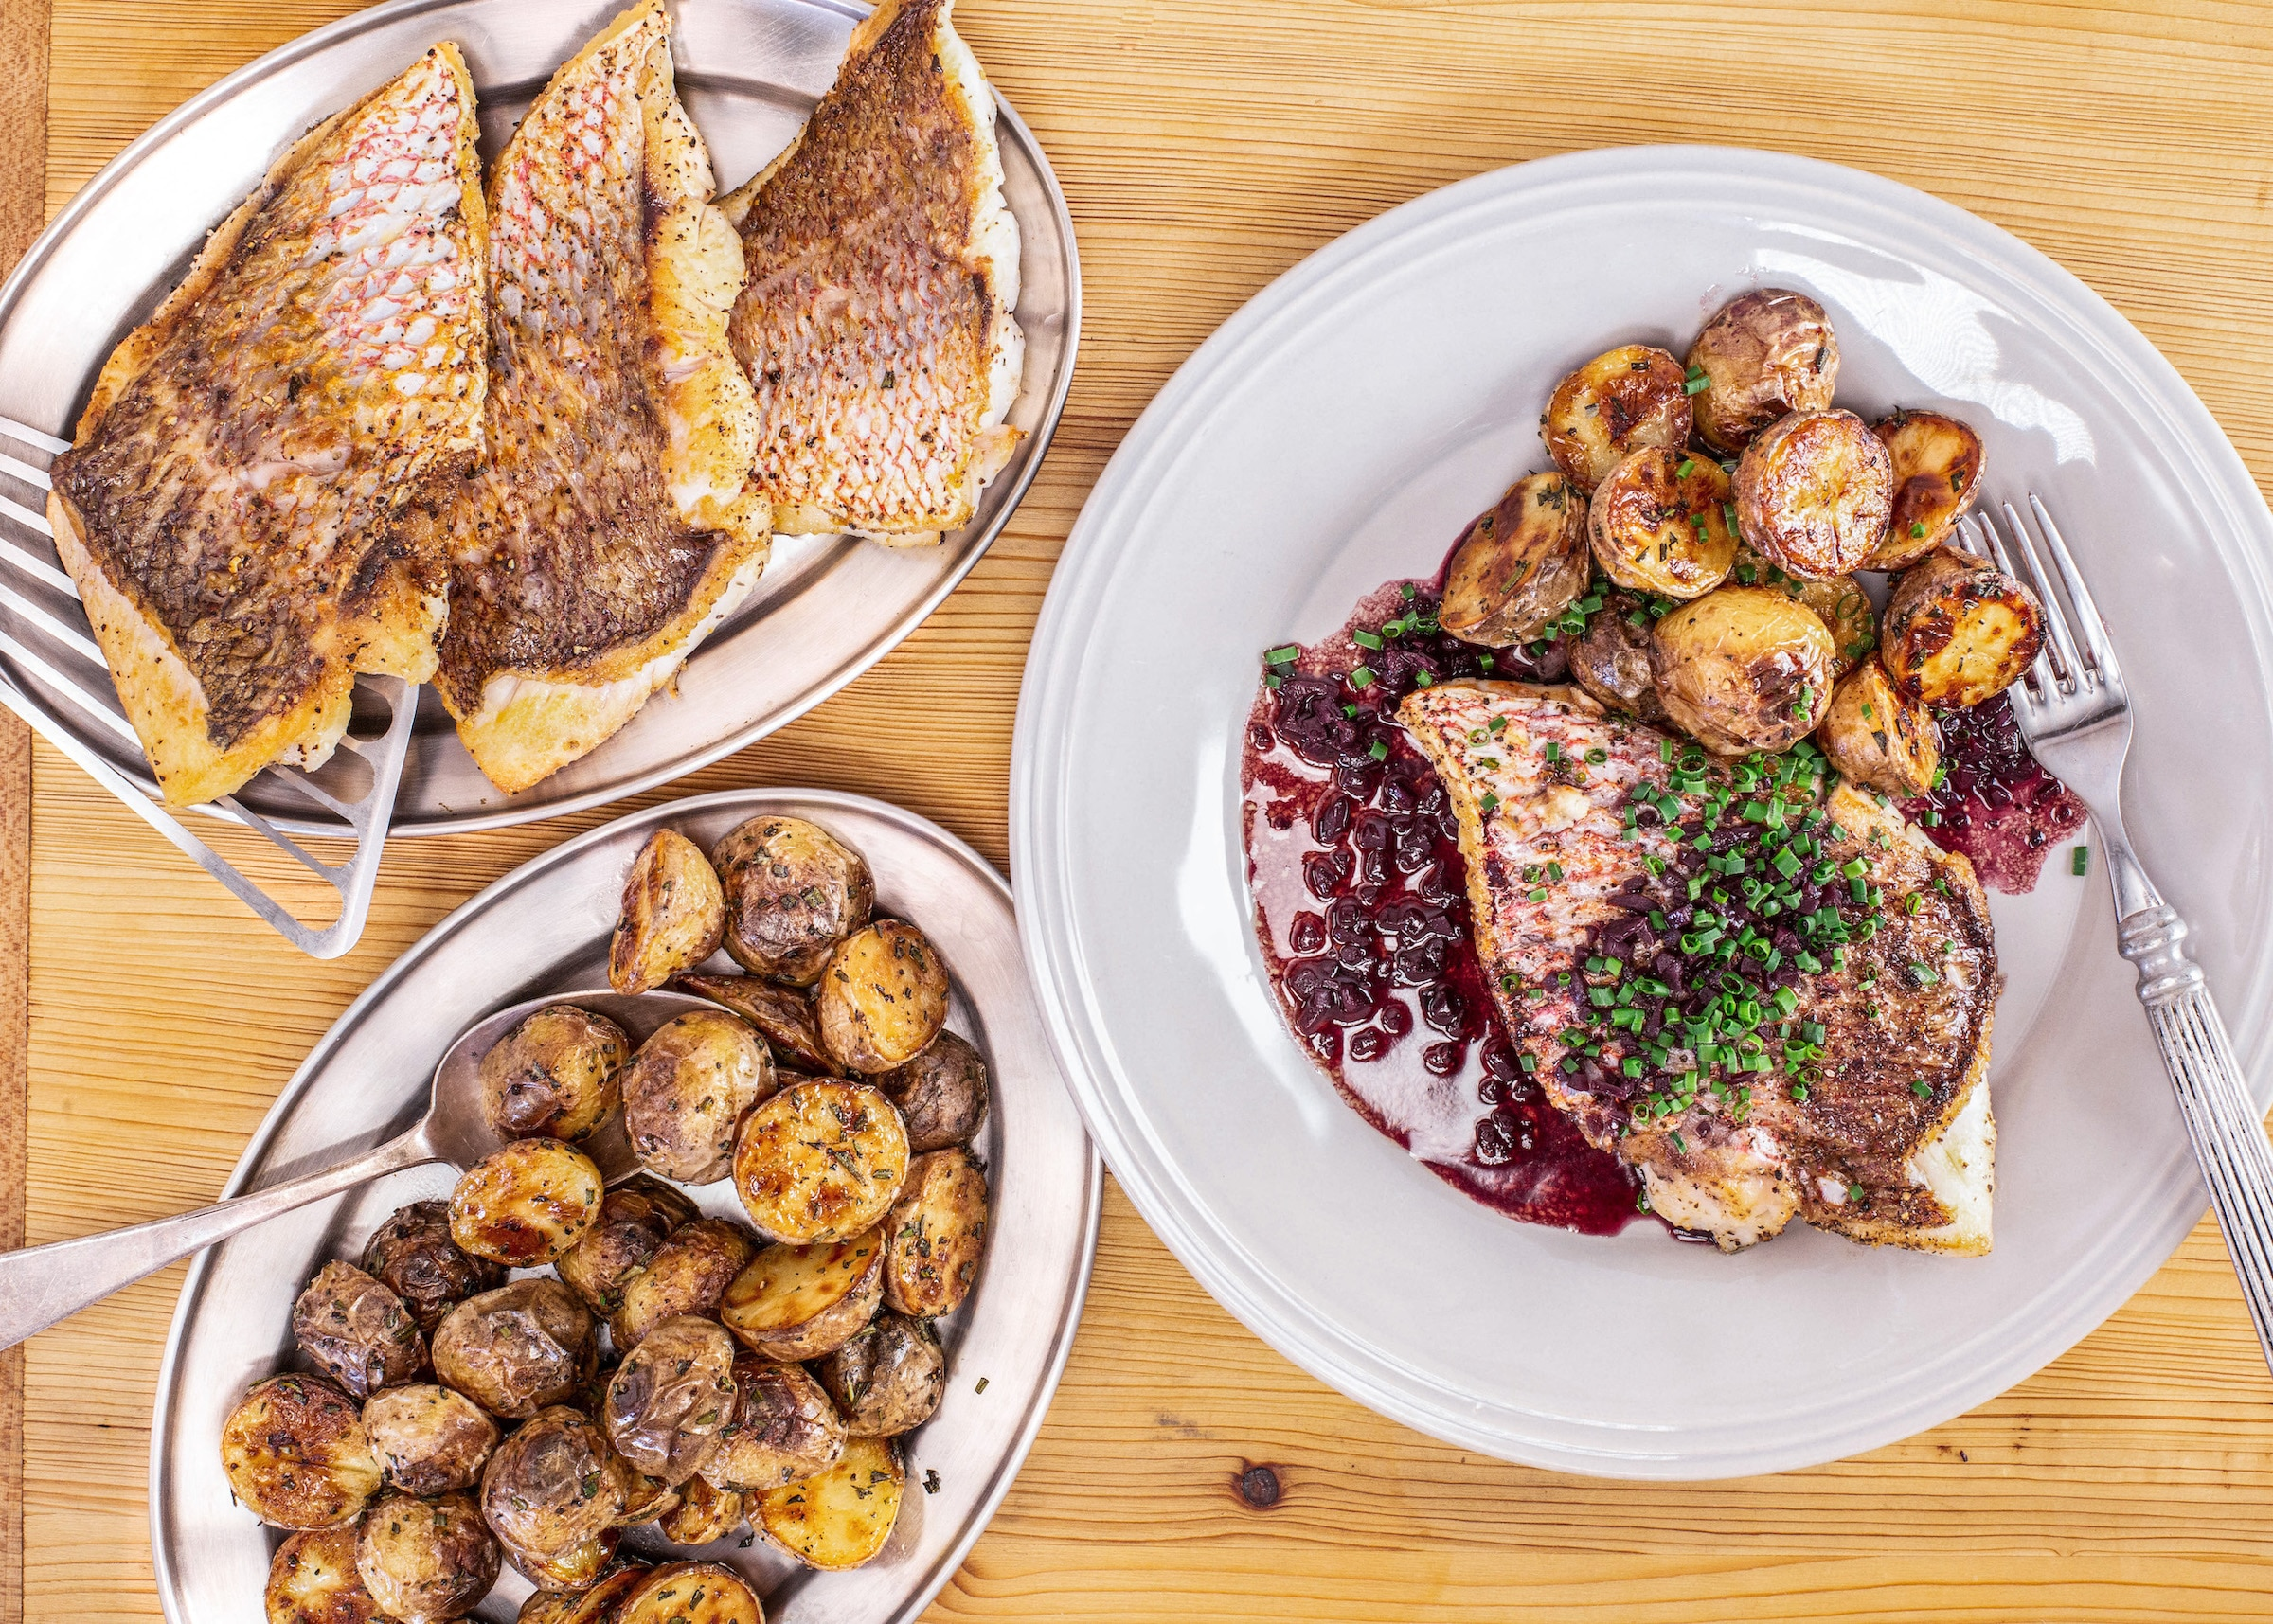 Rachael's Fish With Red Wine Sauce And Rosemary Potatoes